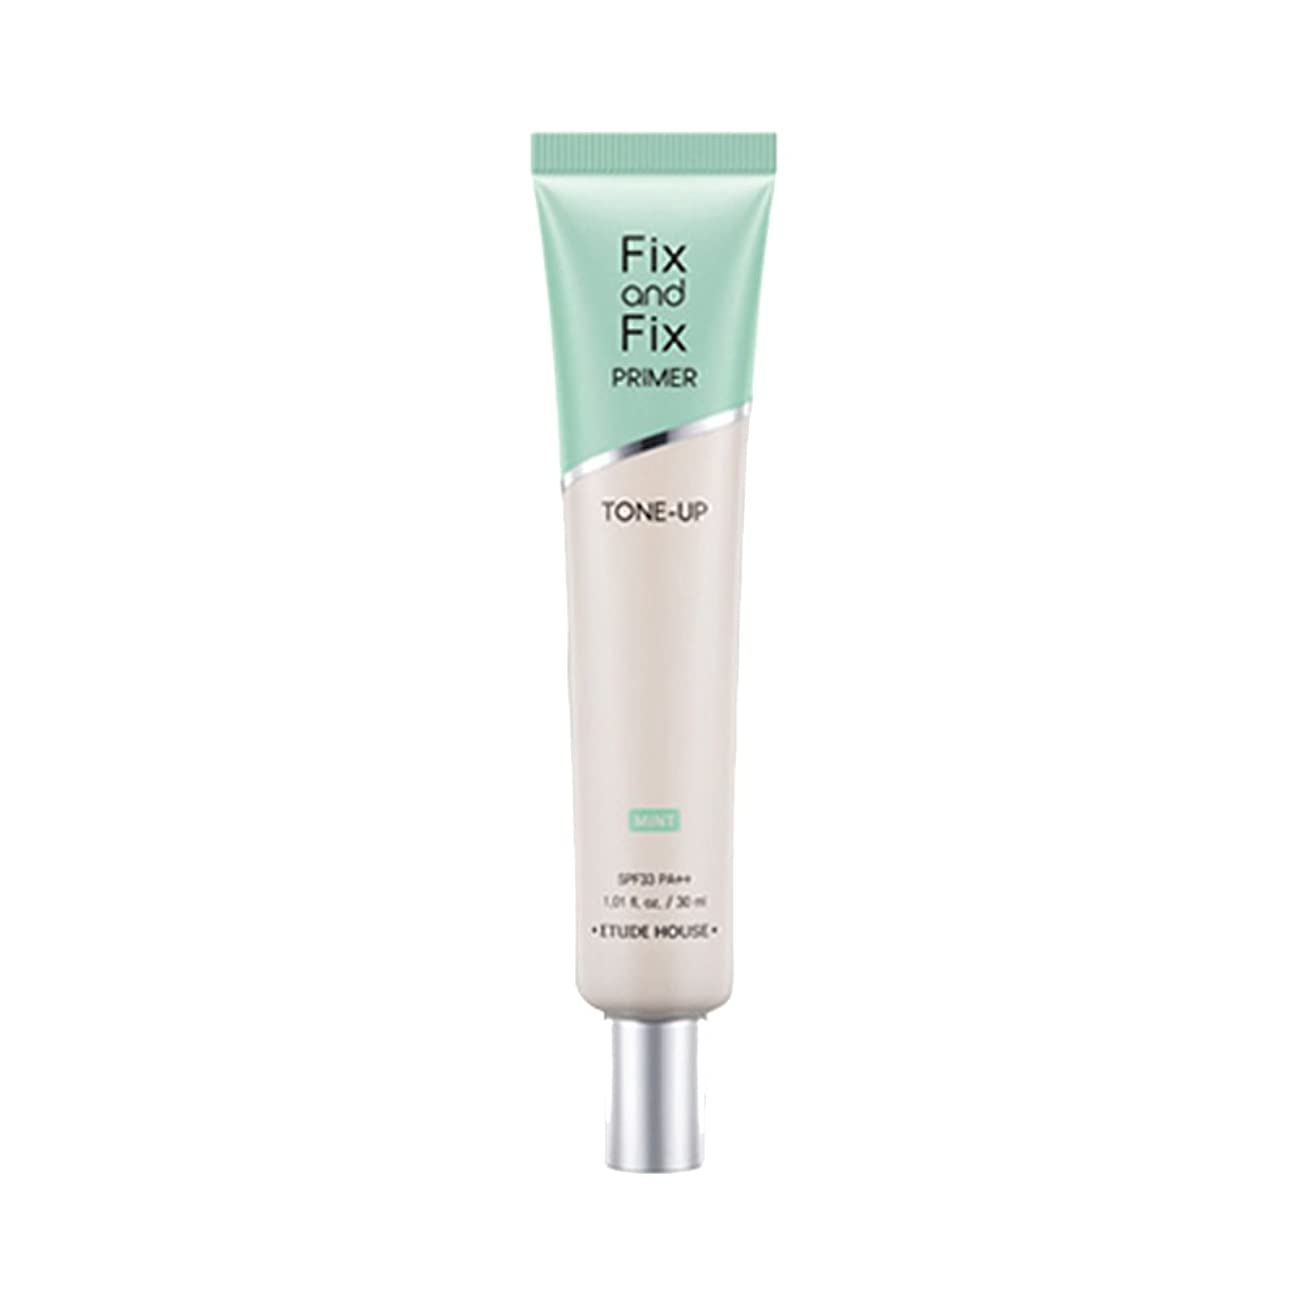 ドレス考古学的な簡単な(3 Pack) ETUDE HOUSE Fix And Fix Primer Tone Up Primer - Mint (並行輸入品)